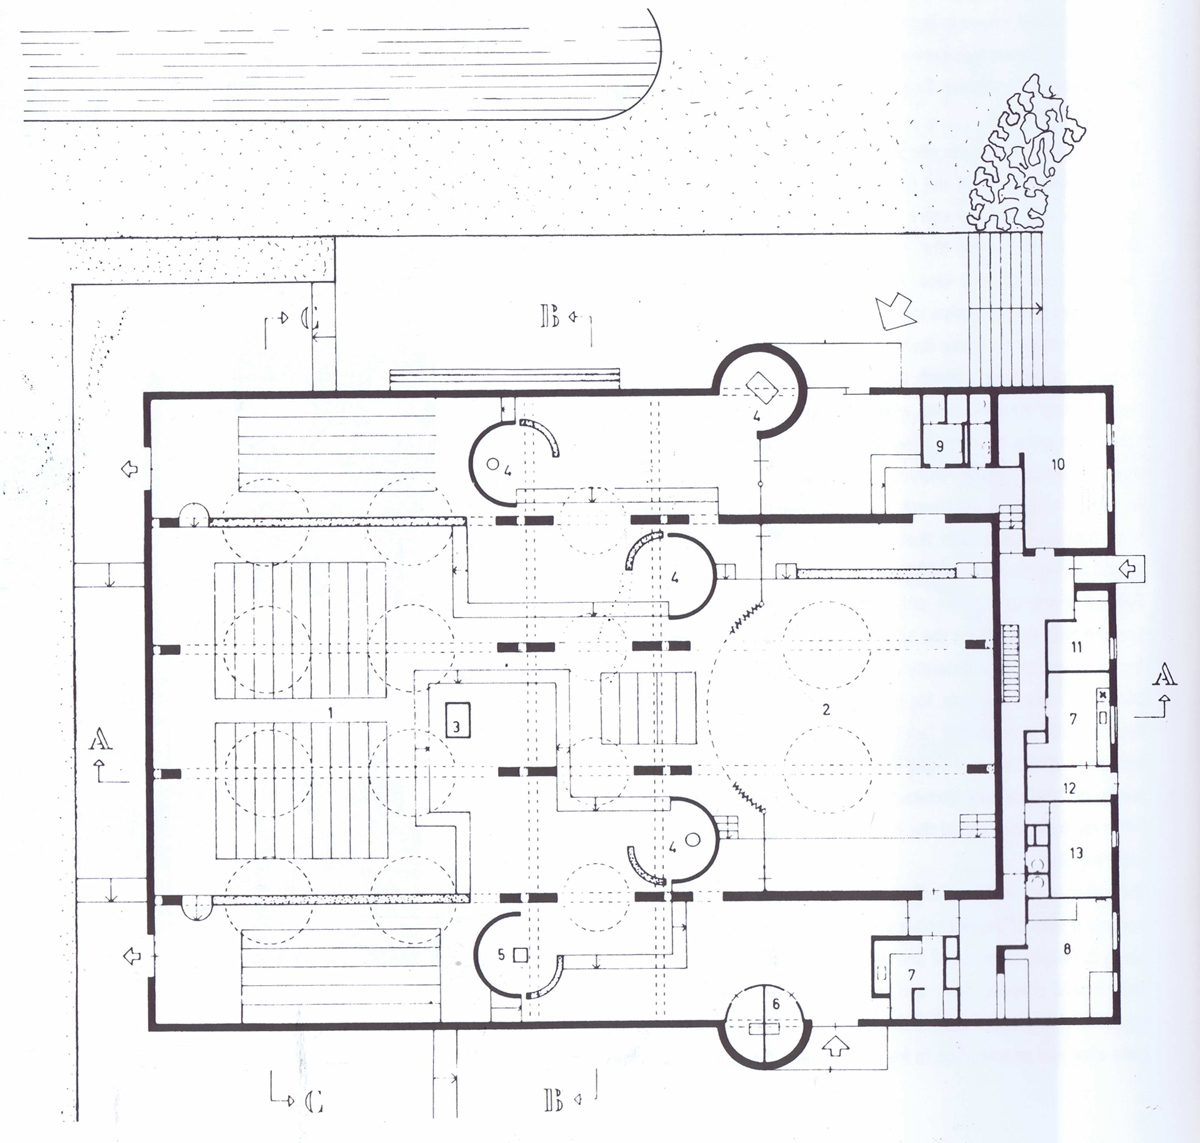 100 floor plan of a church proposed plans rooms for hire